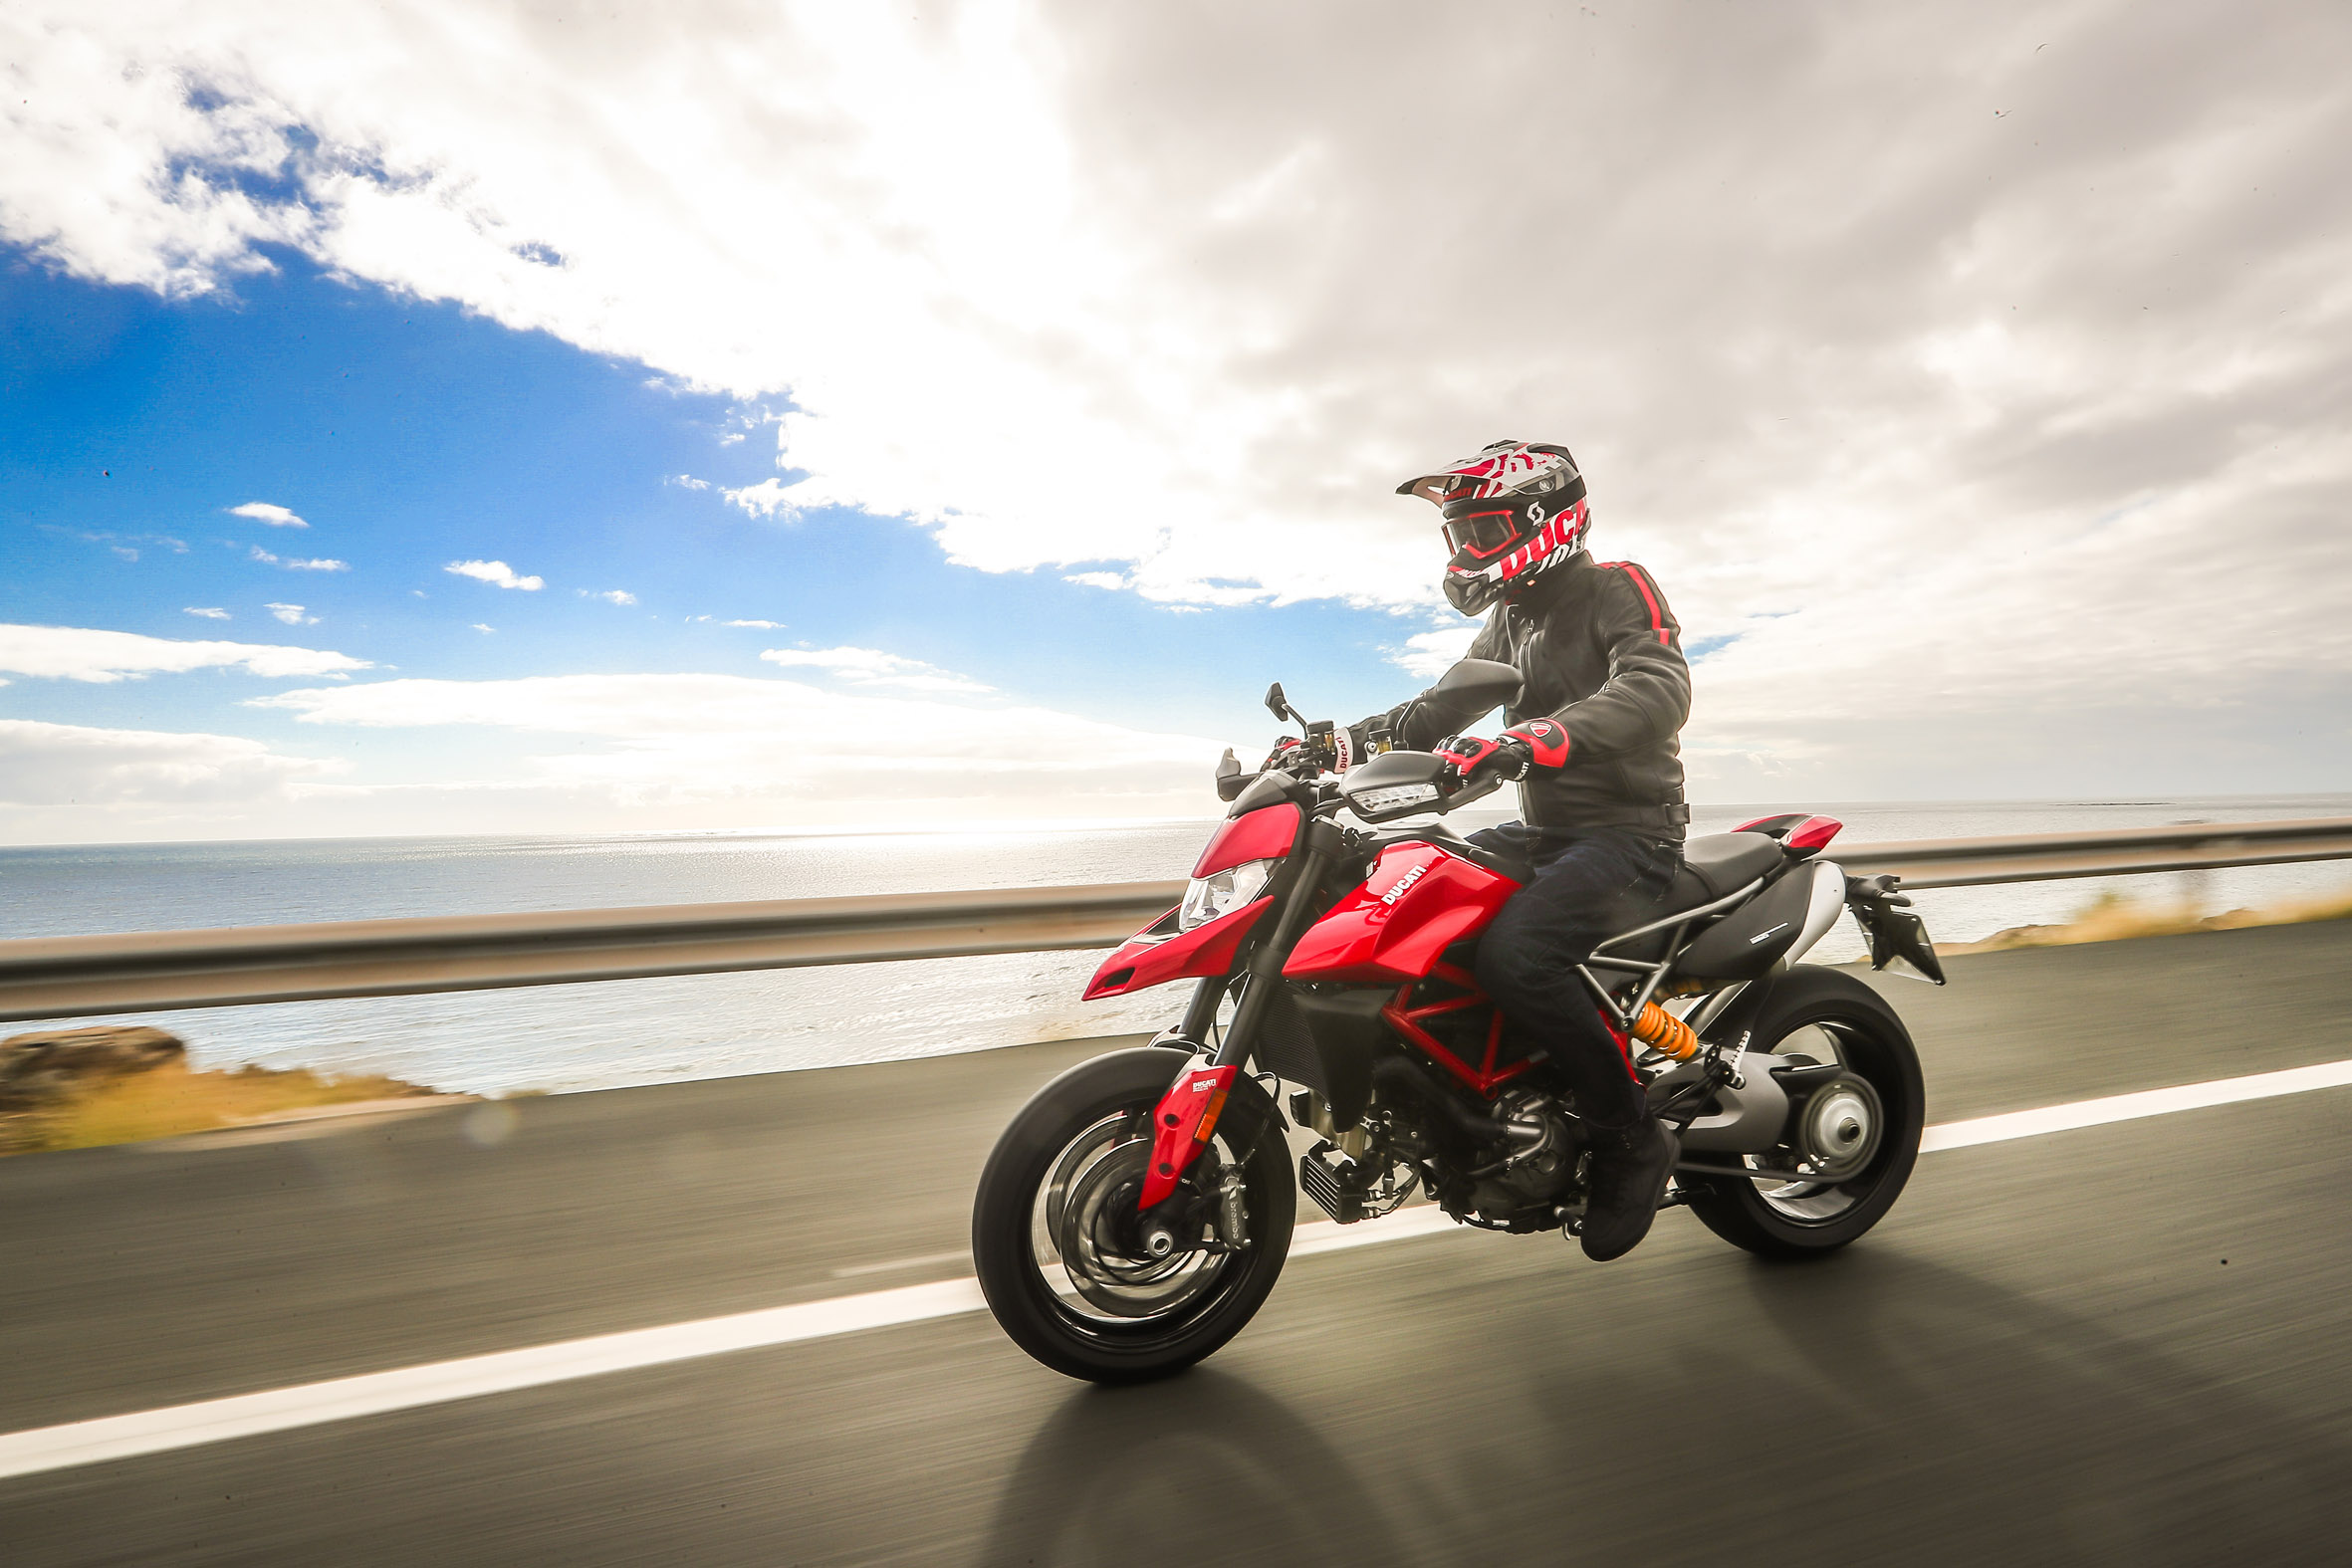 , Luxury motorcycle brand Ducati launches its all-new Hypermotard 950 power bike in India